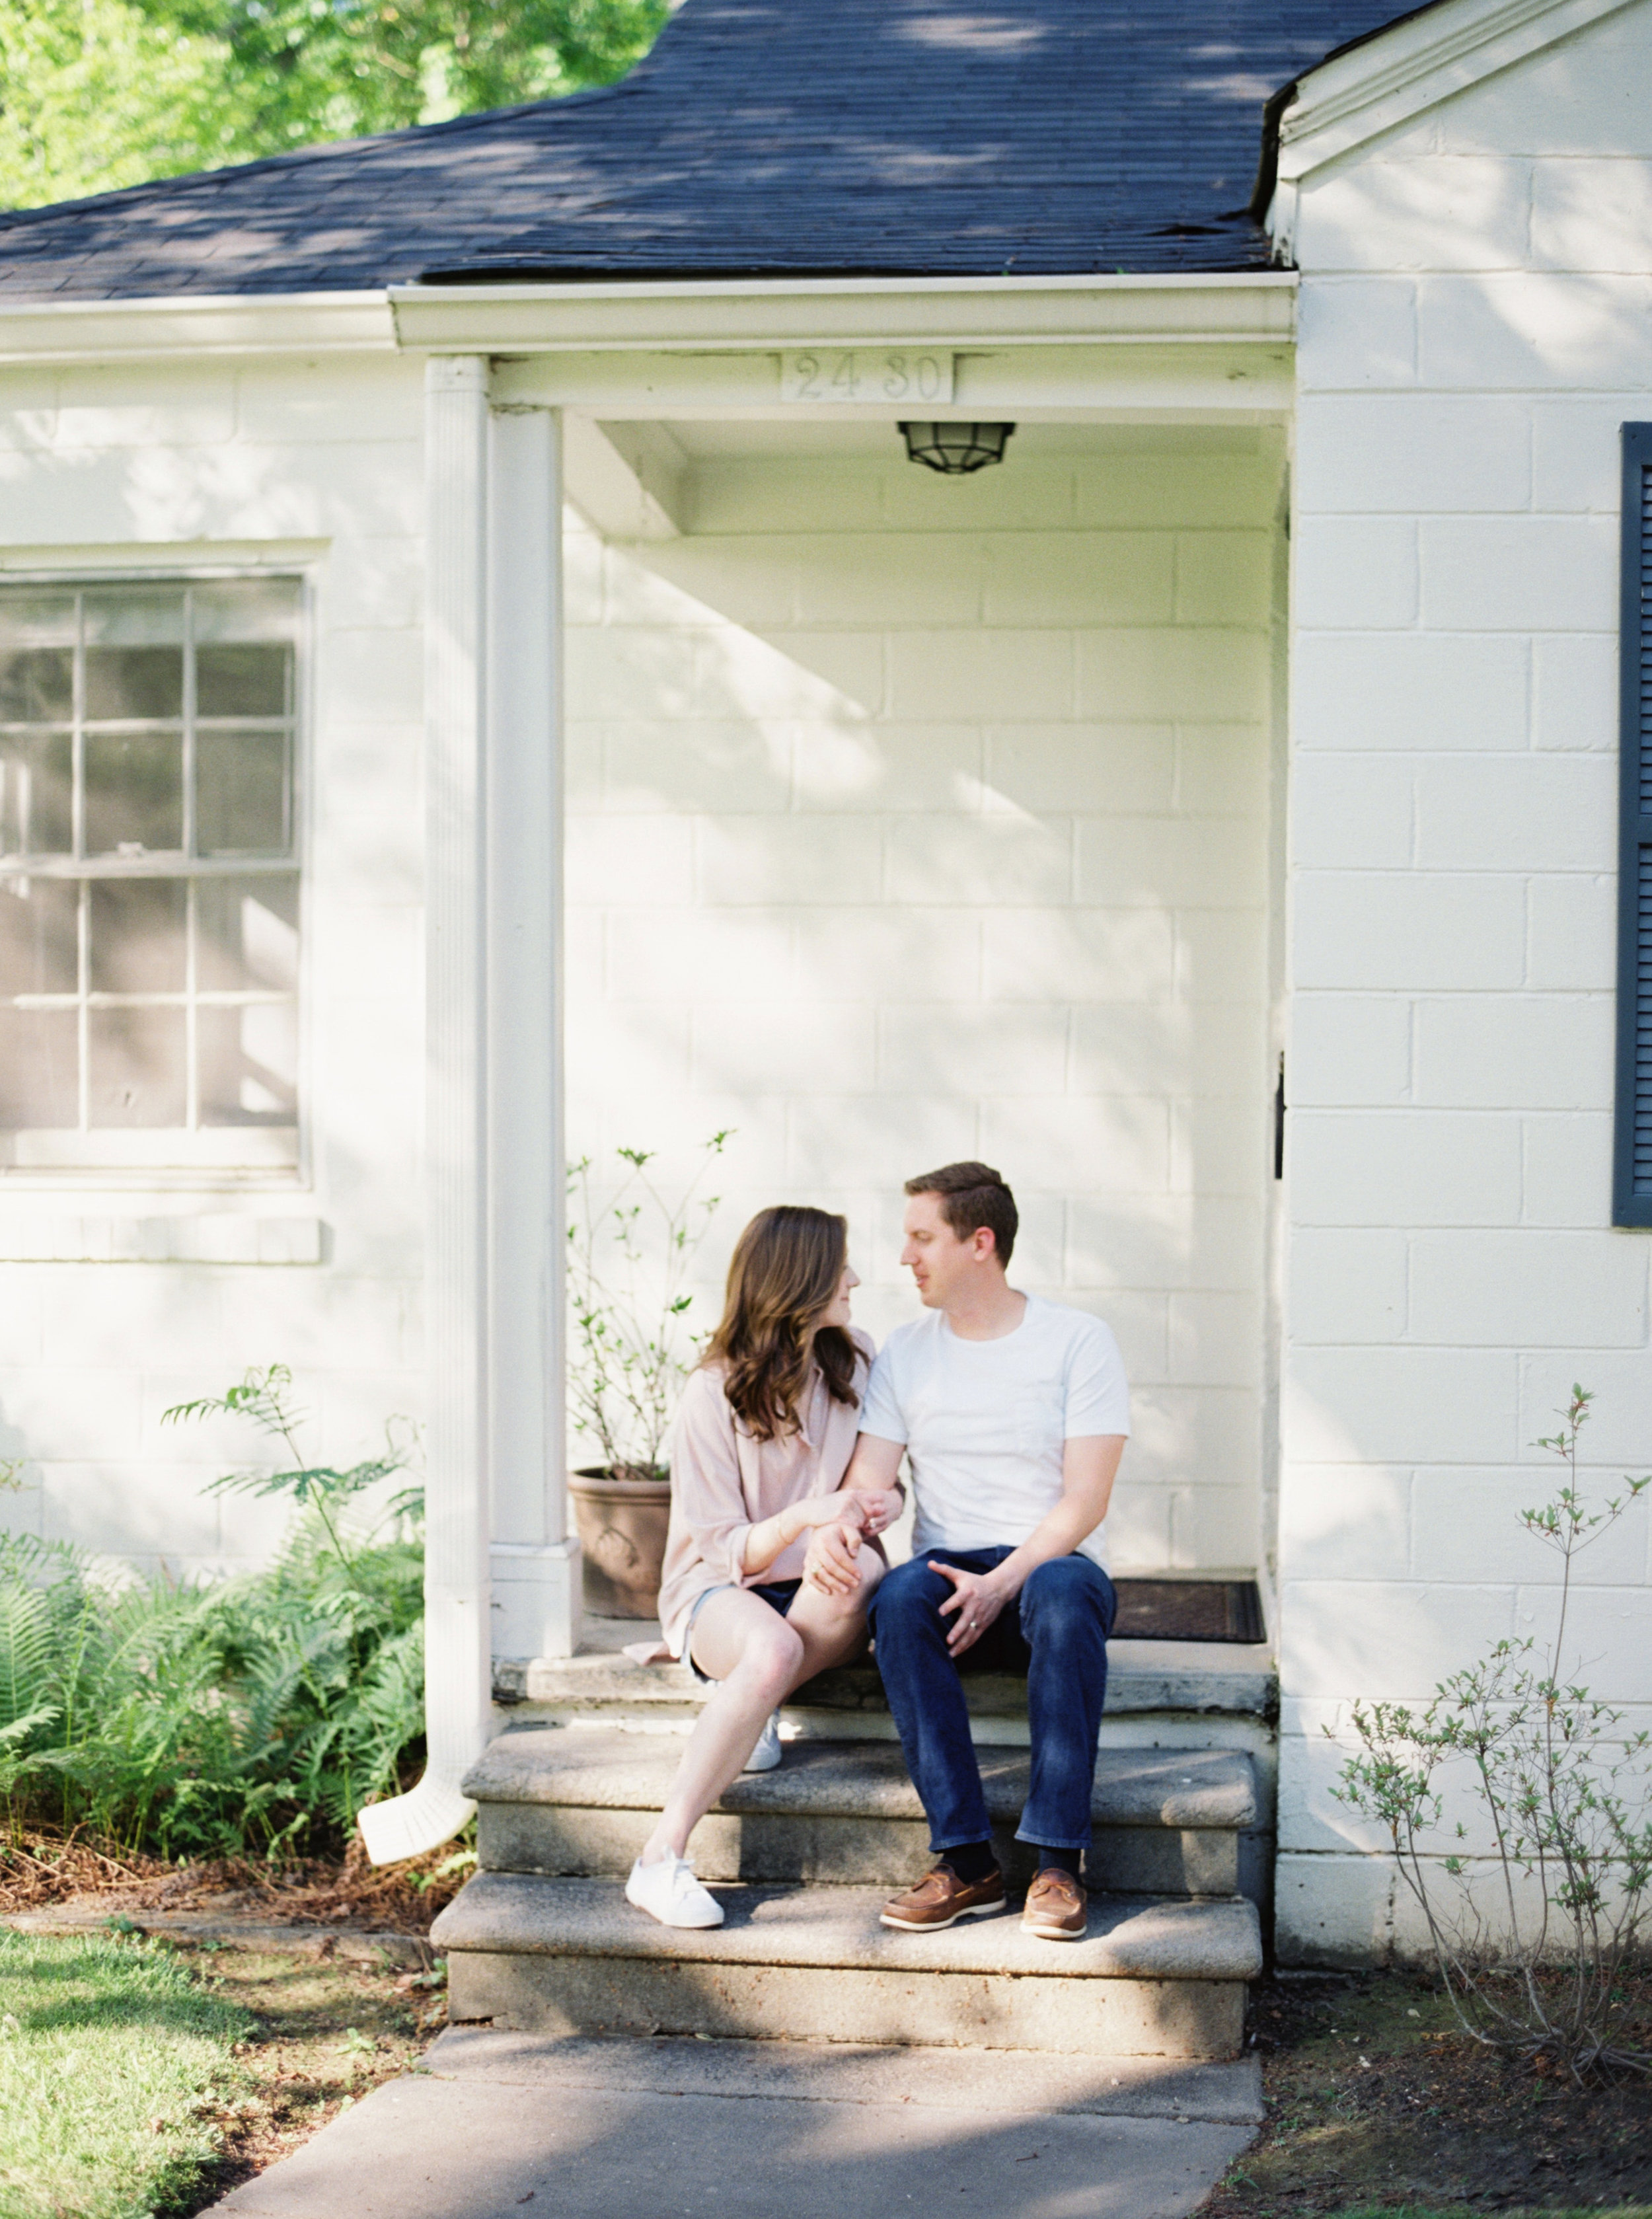 Anniversary images captured in the home in an authentic, everyday, intimate and lifestyle way. Anniversary photo sessions make for one of the best anniversary or even wedding gifts for your wife. It's a sweet way of being able to preserve your first memories of everyday life together. This session was captured by Meghan Murphy, a fine art film photographer based out of Birmingham, Alabama. This anniversary photo session took place at the couple's home in Mountain Brook Village. You can find the couple washing dishes together, cooking together, praying together, sharing sweet intimate moments and visiting their favorite ice cream shop (Mountain Brook Creamery) that's within walking distance from their house.